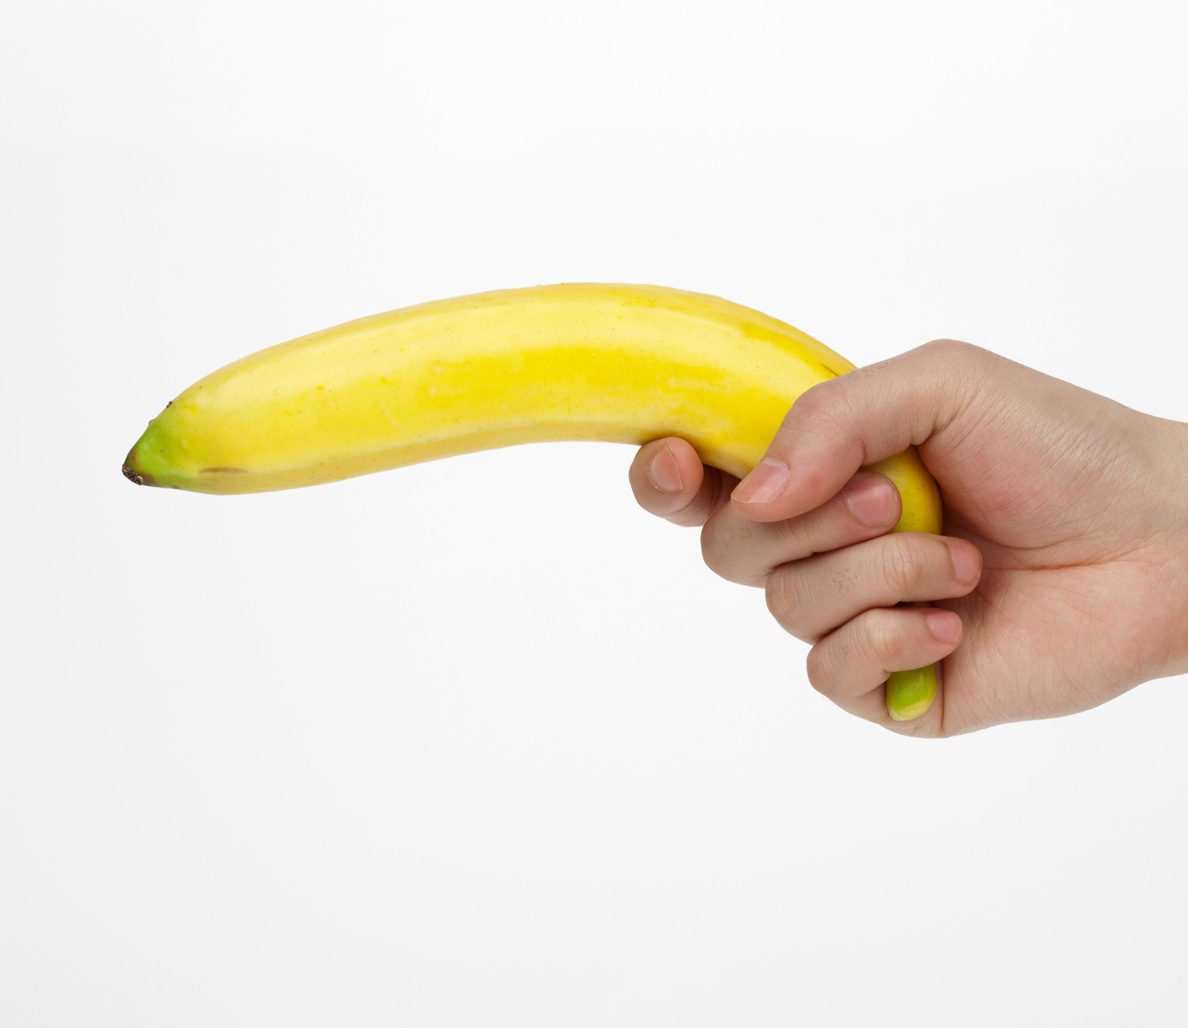 What can i do to increase my penis size